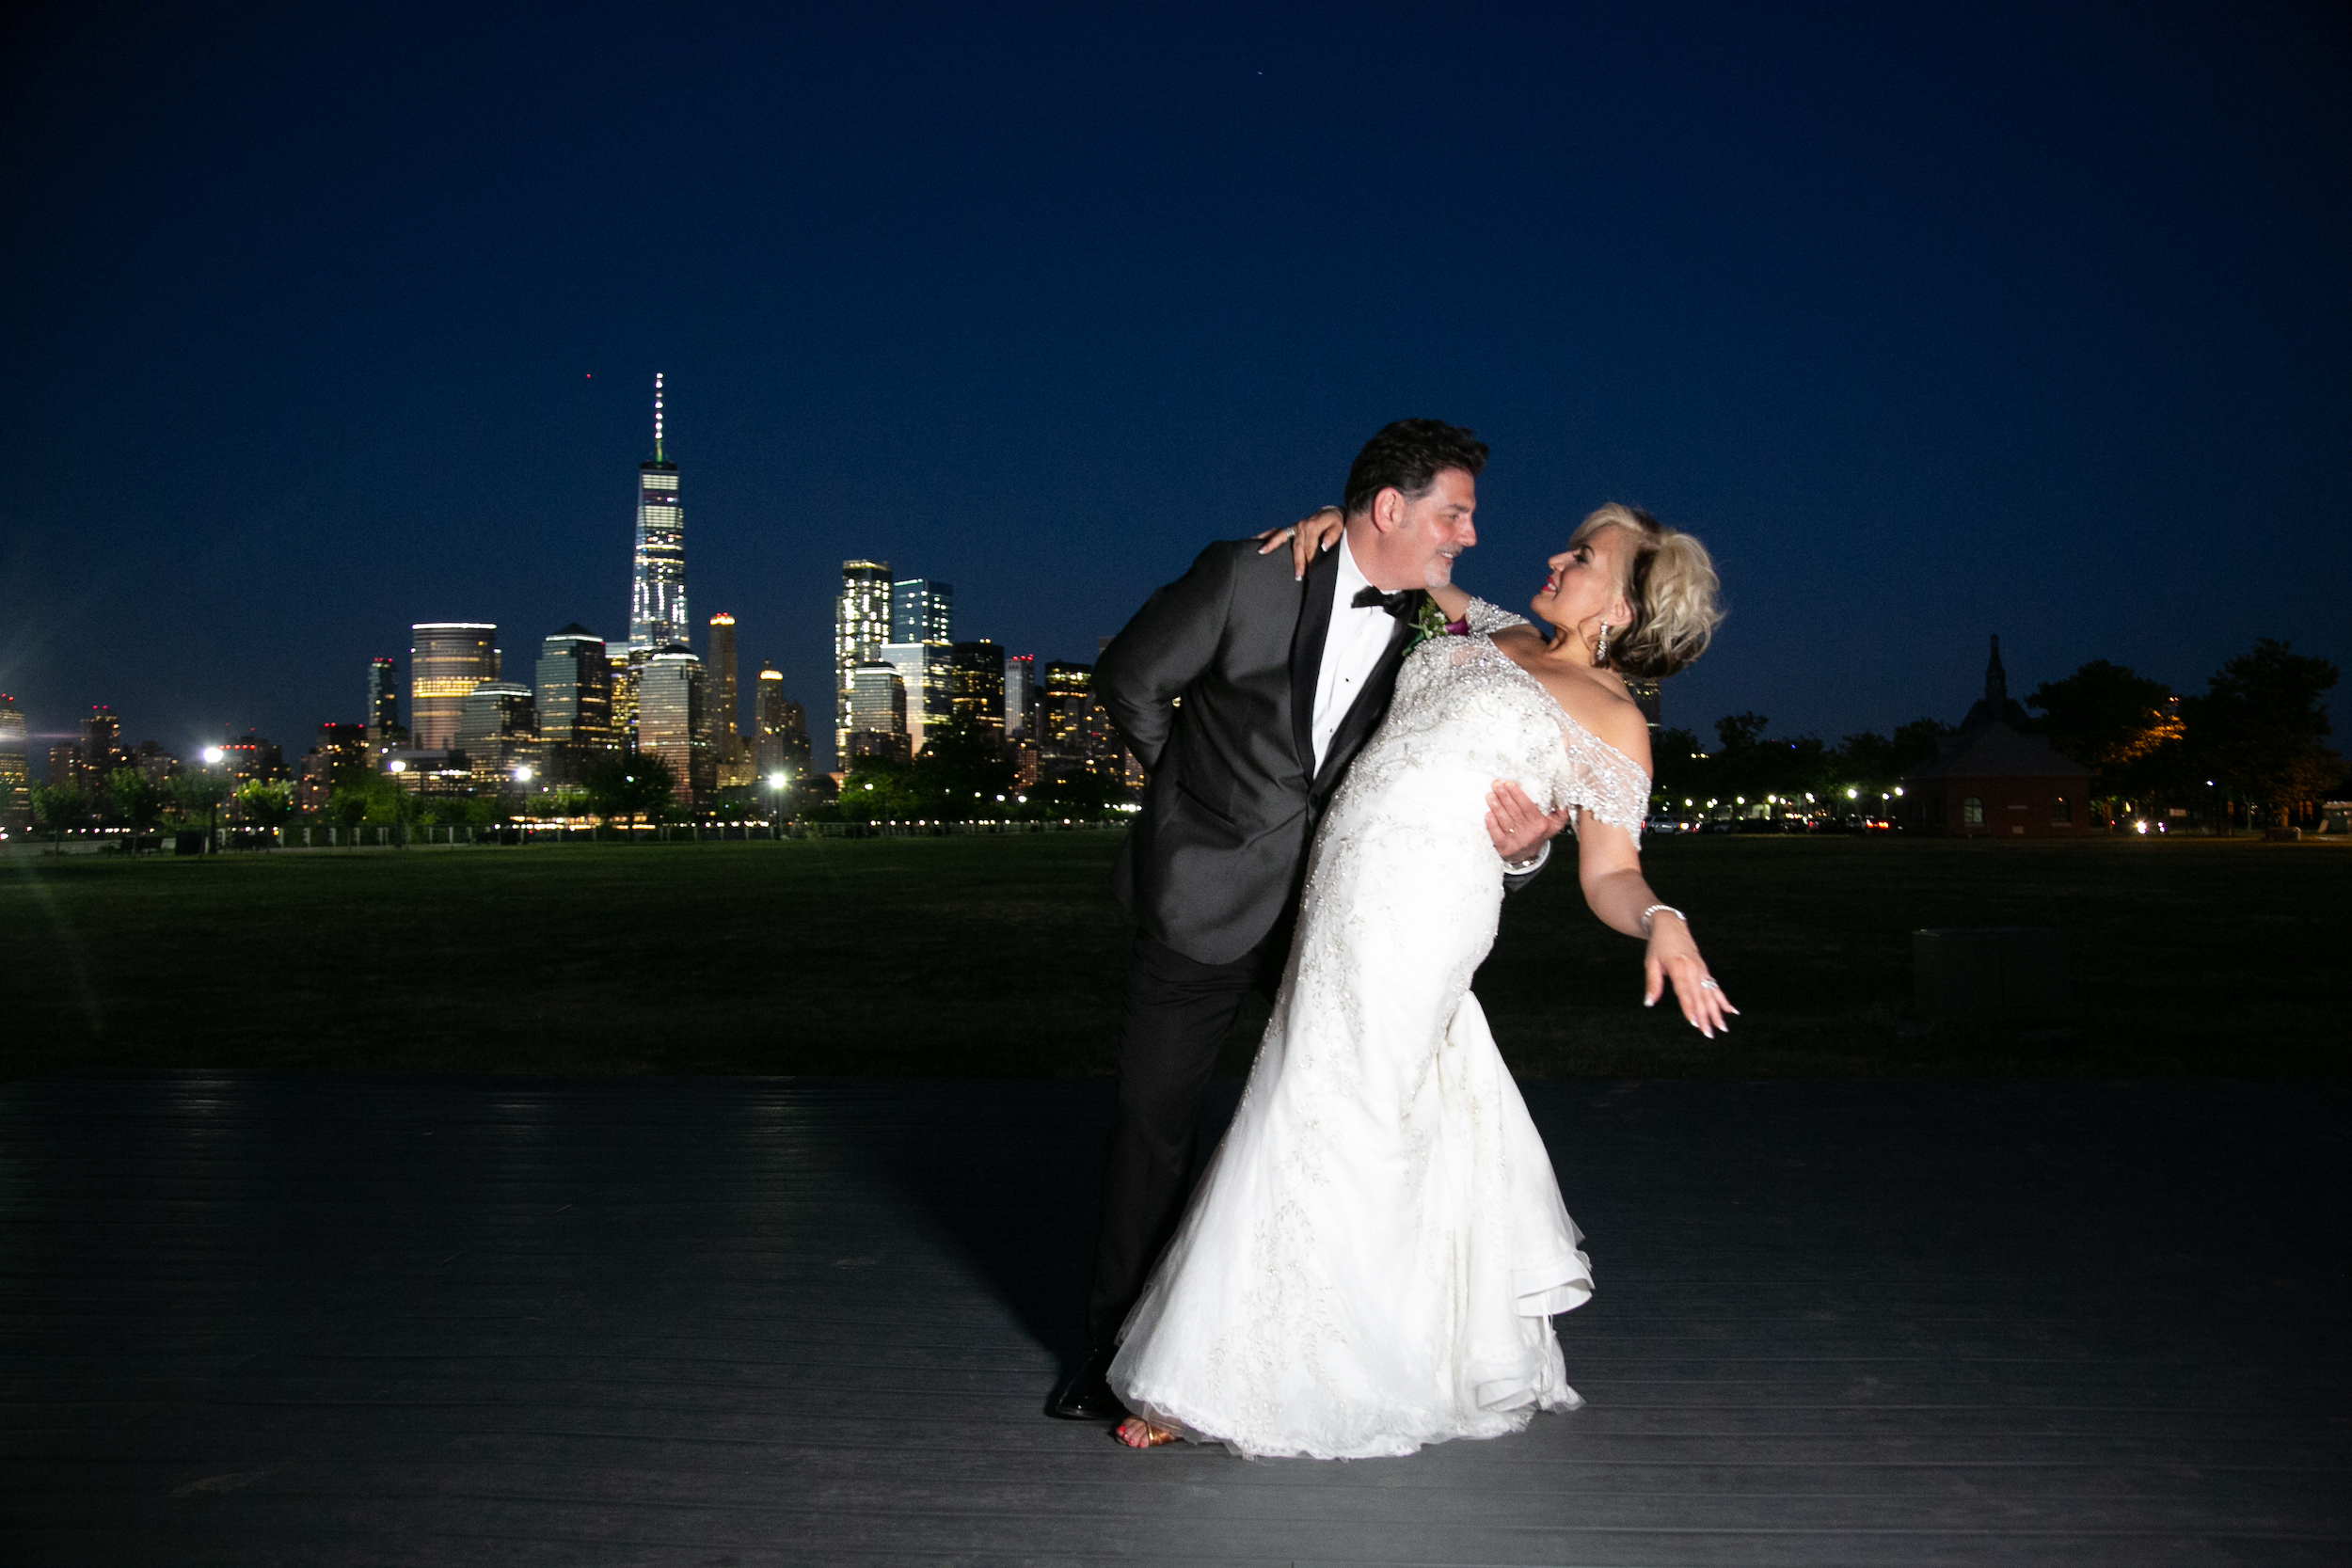 Dance  Lessons for Your Wedding  at Quick Quick Slow Ballroom Dance Studio